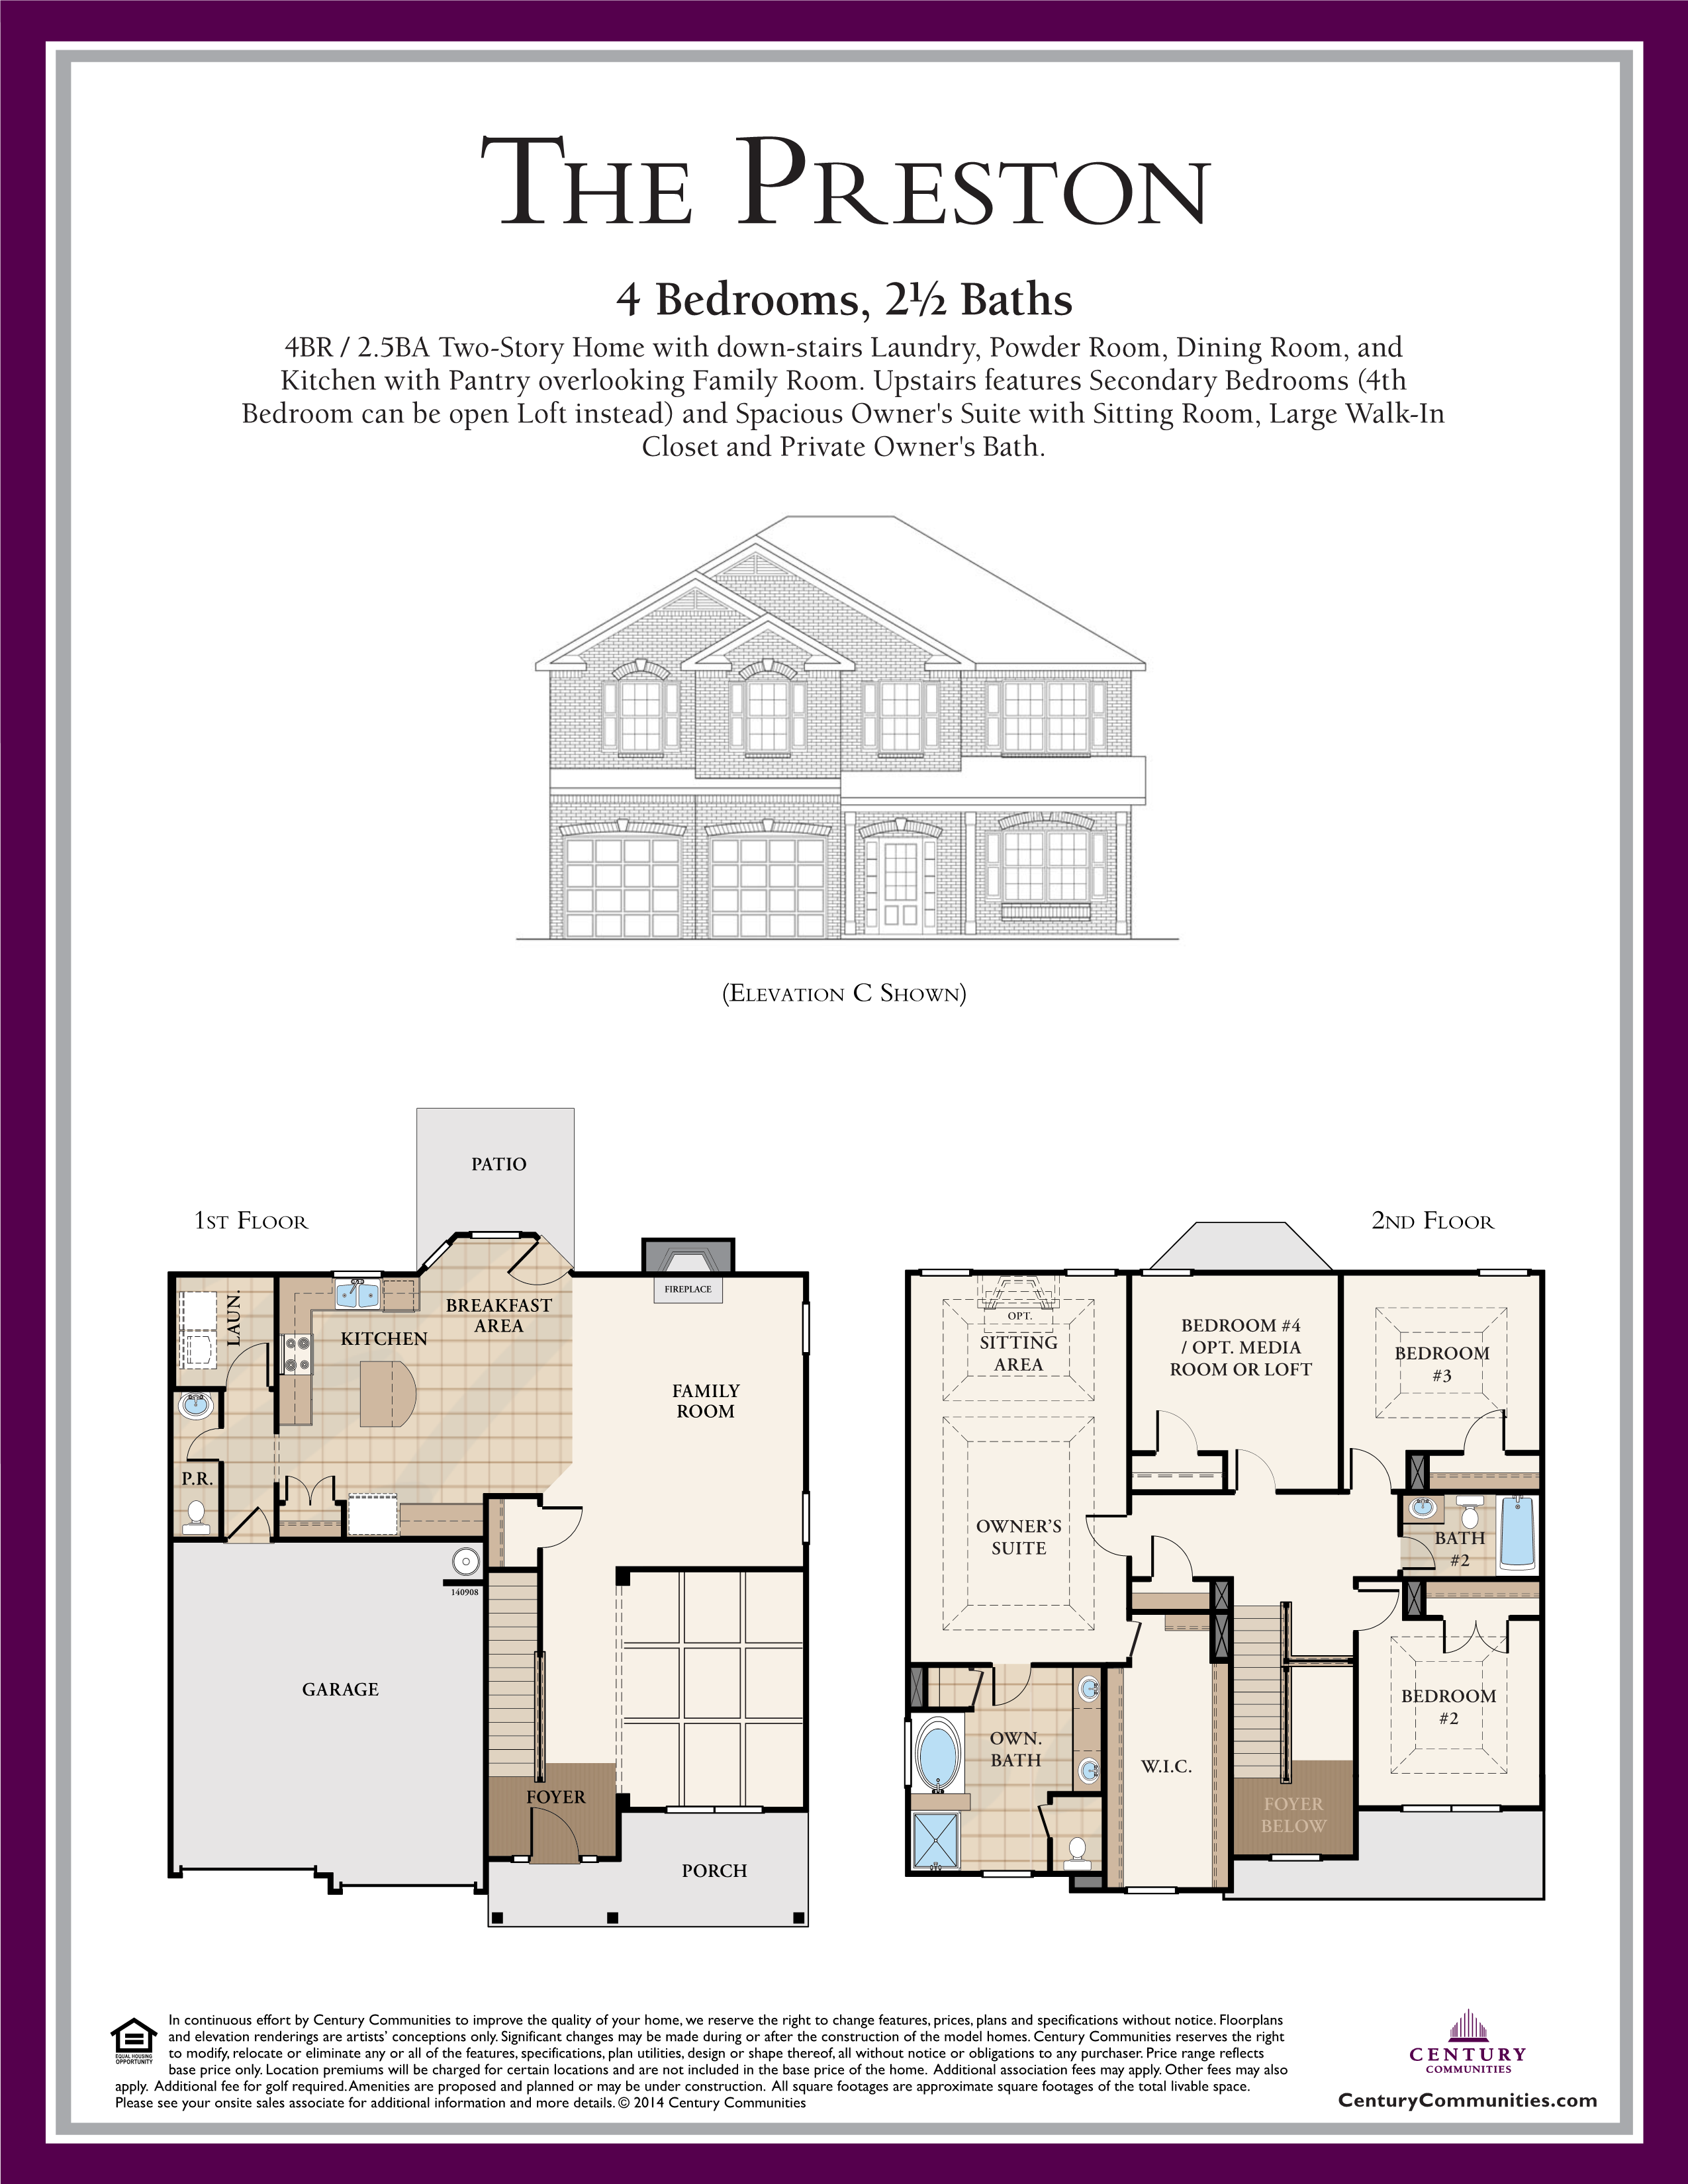 The Preston floor plan is a 4BR 2 5BA Two Story Home with down stairs Laundry Powder Room Dining Room and Kitchen with Pantry overlooking Family Room